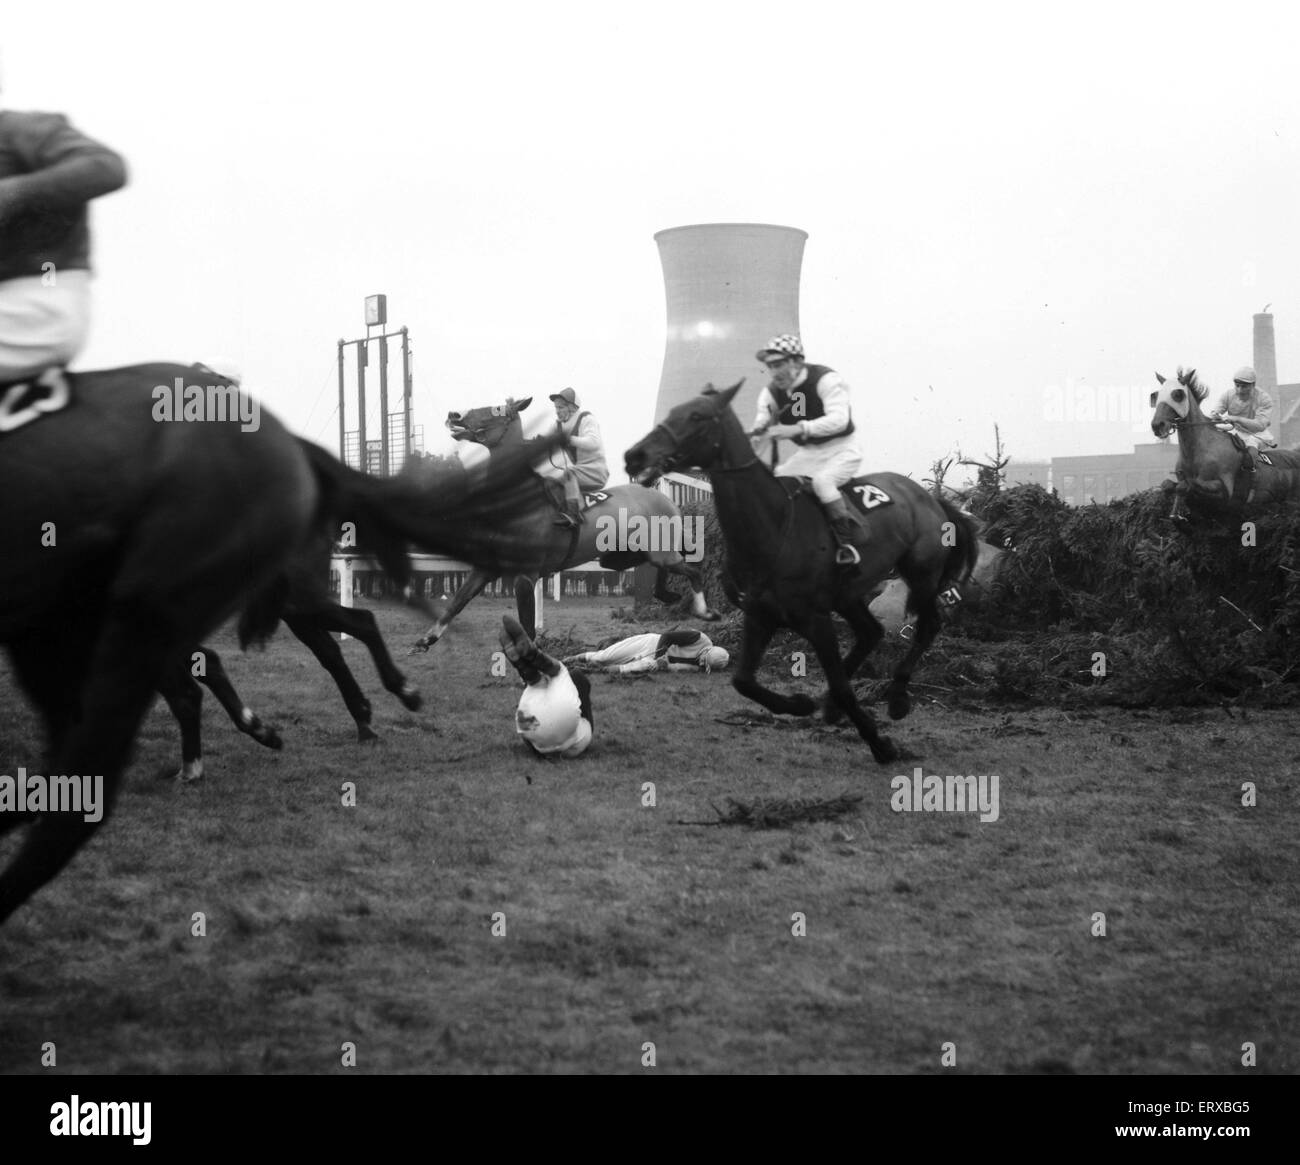 Jockey Paddy Farrell is thrown from his horse Border Flight at the 15th fence of the Aintree Grand National.  Farrell - Stock Image